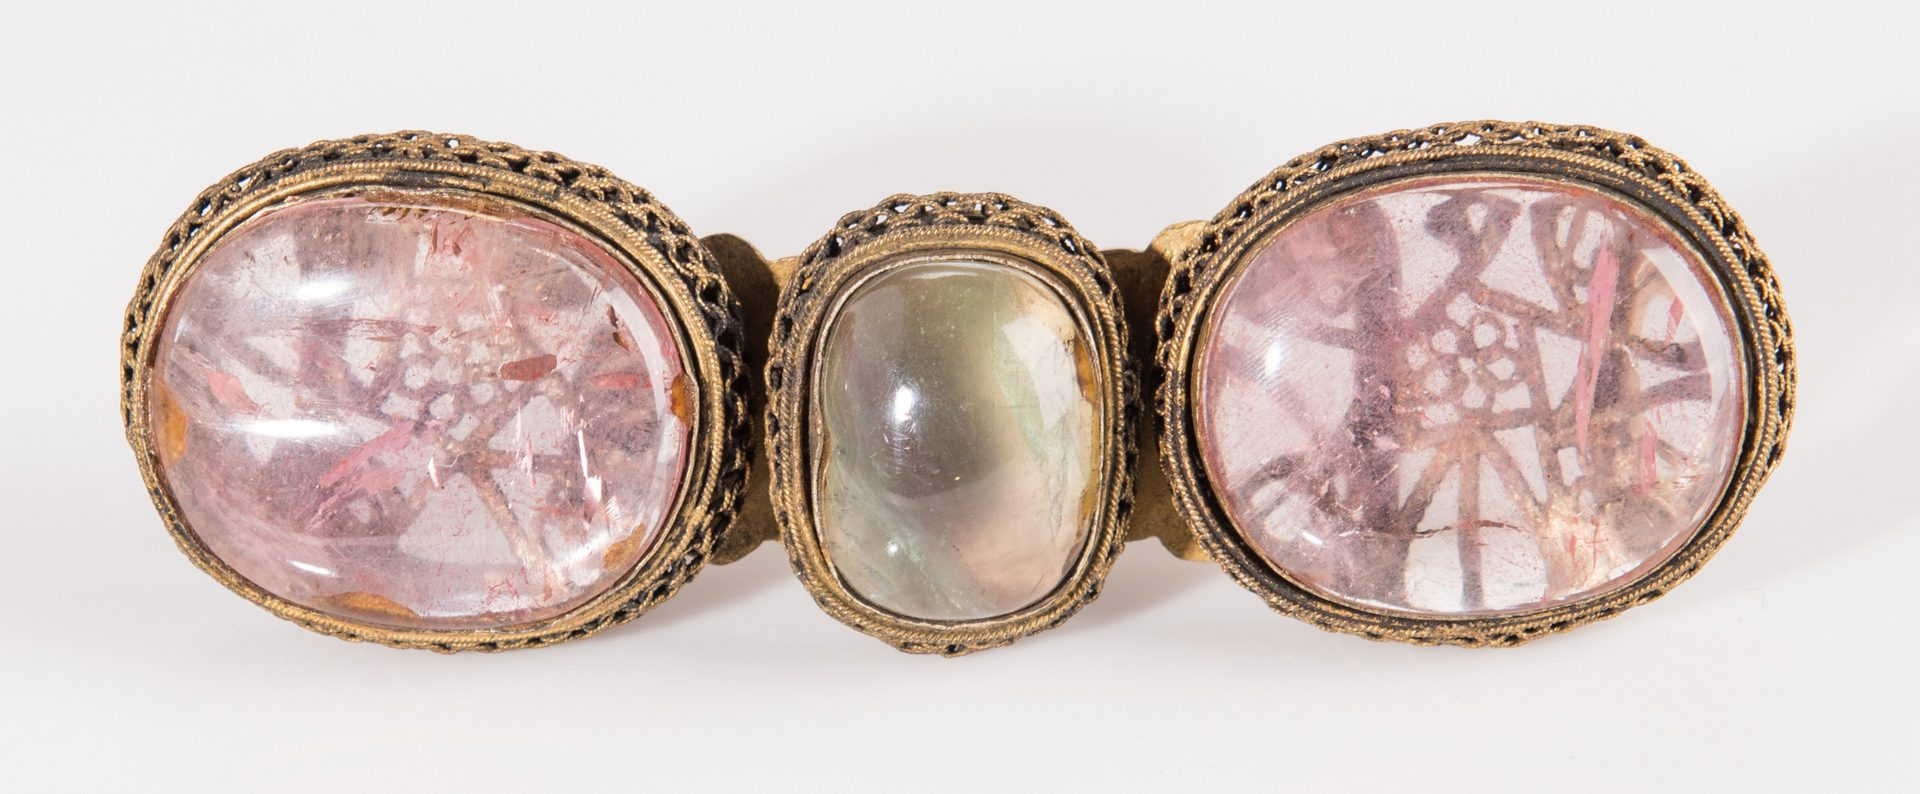 Lot 6: 3 Chinese Quartz, Agate & Gilt Bronze Belt Buckles